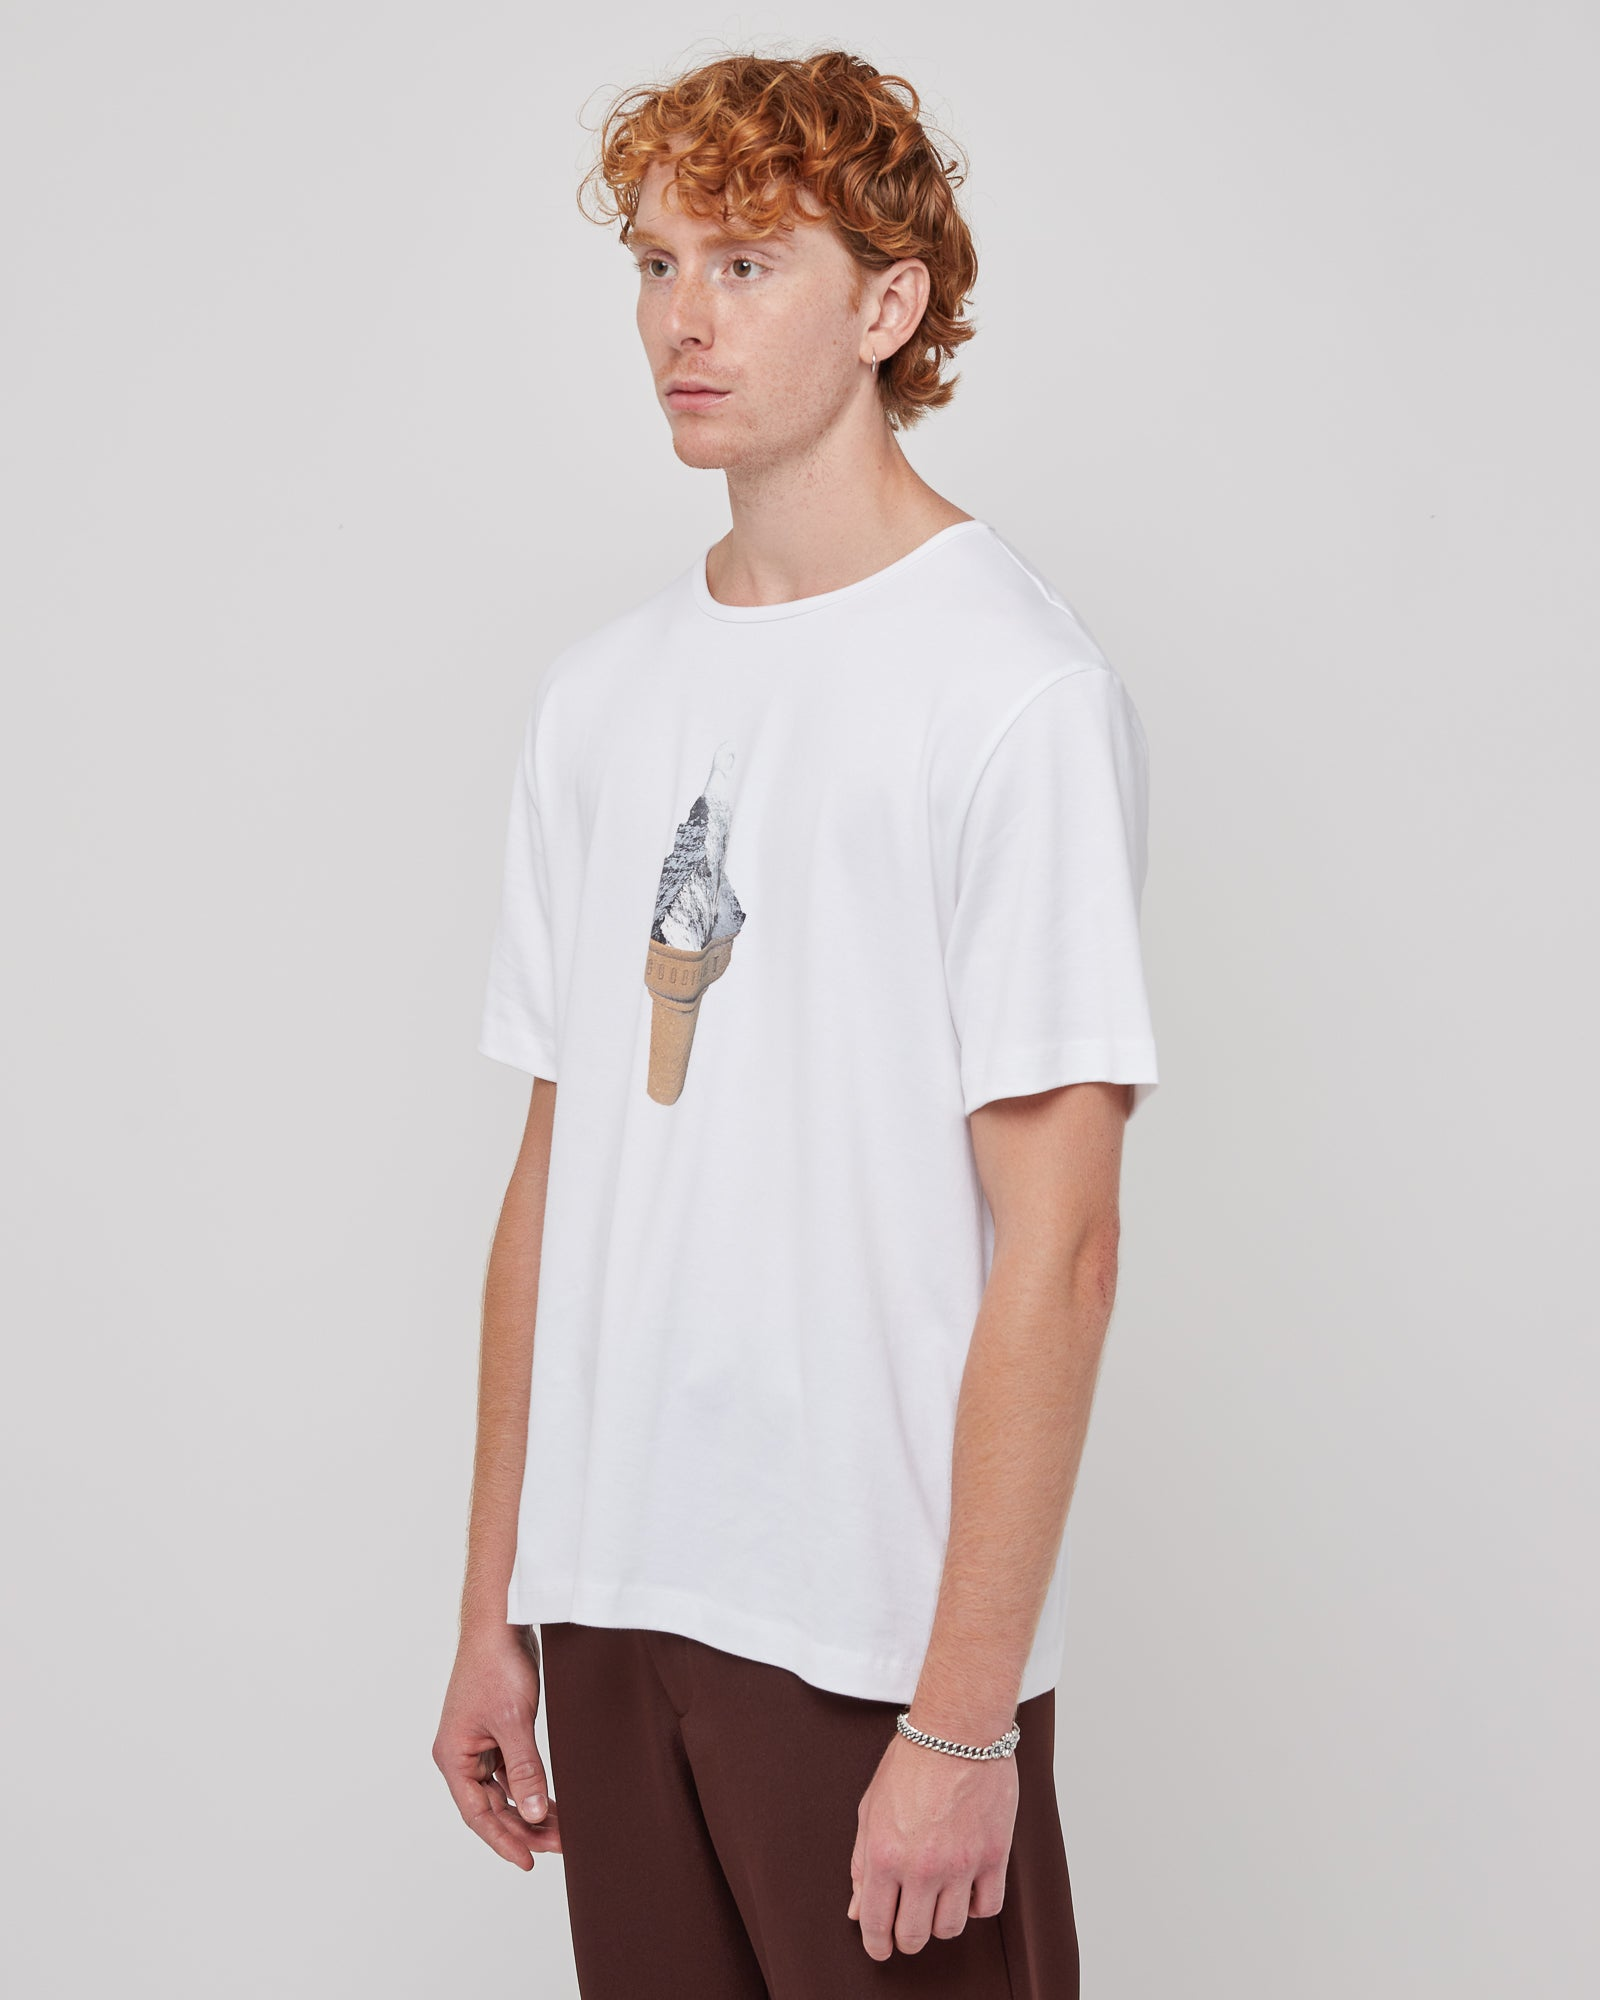 Ice Cream Mountain S/S T-Shirt in White